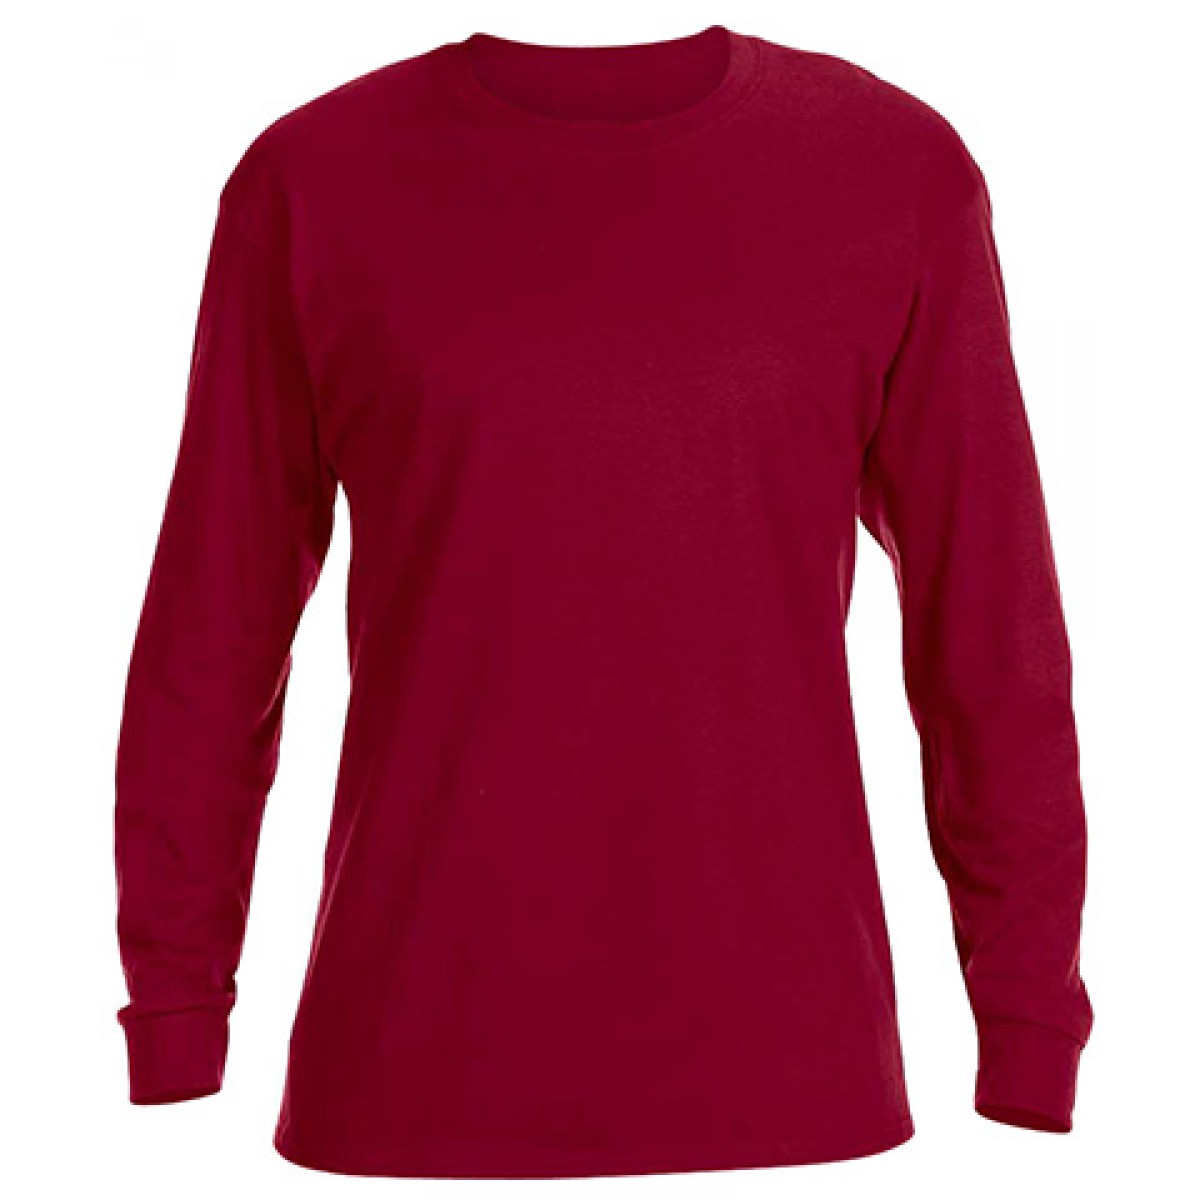 Basic Long Sleeve Crew Neck -Cardinal Red-2XL